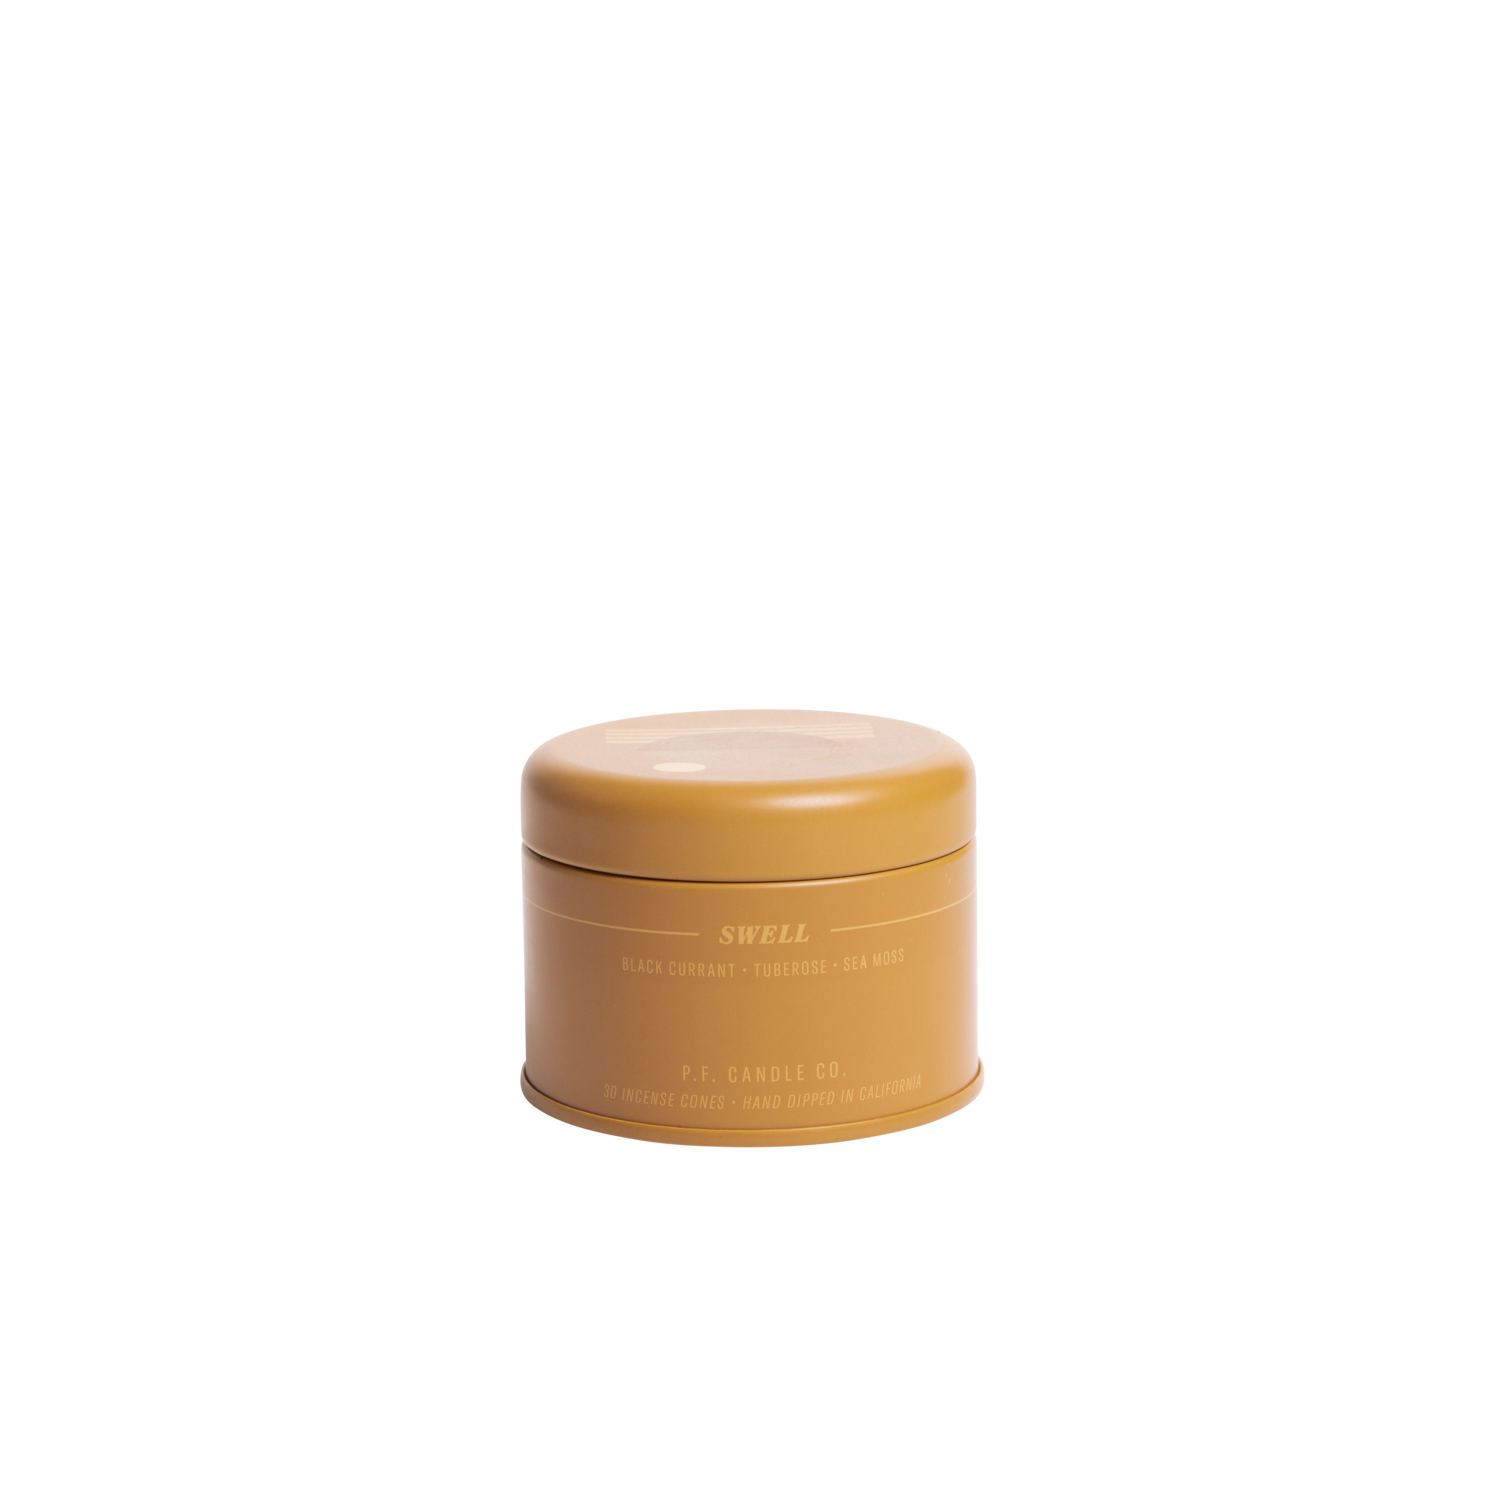 Swell Sunset Incense Cones - P.F. Candle Co.